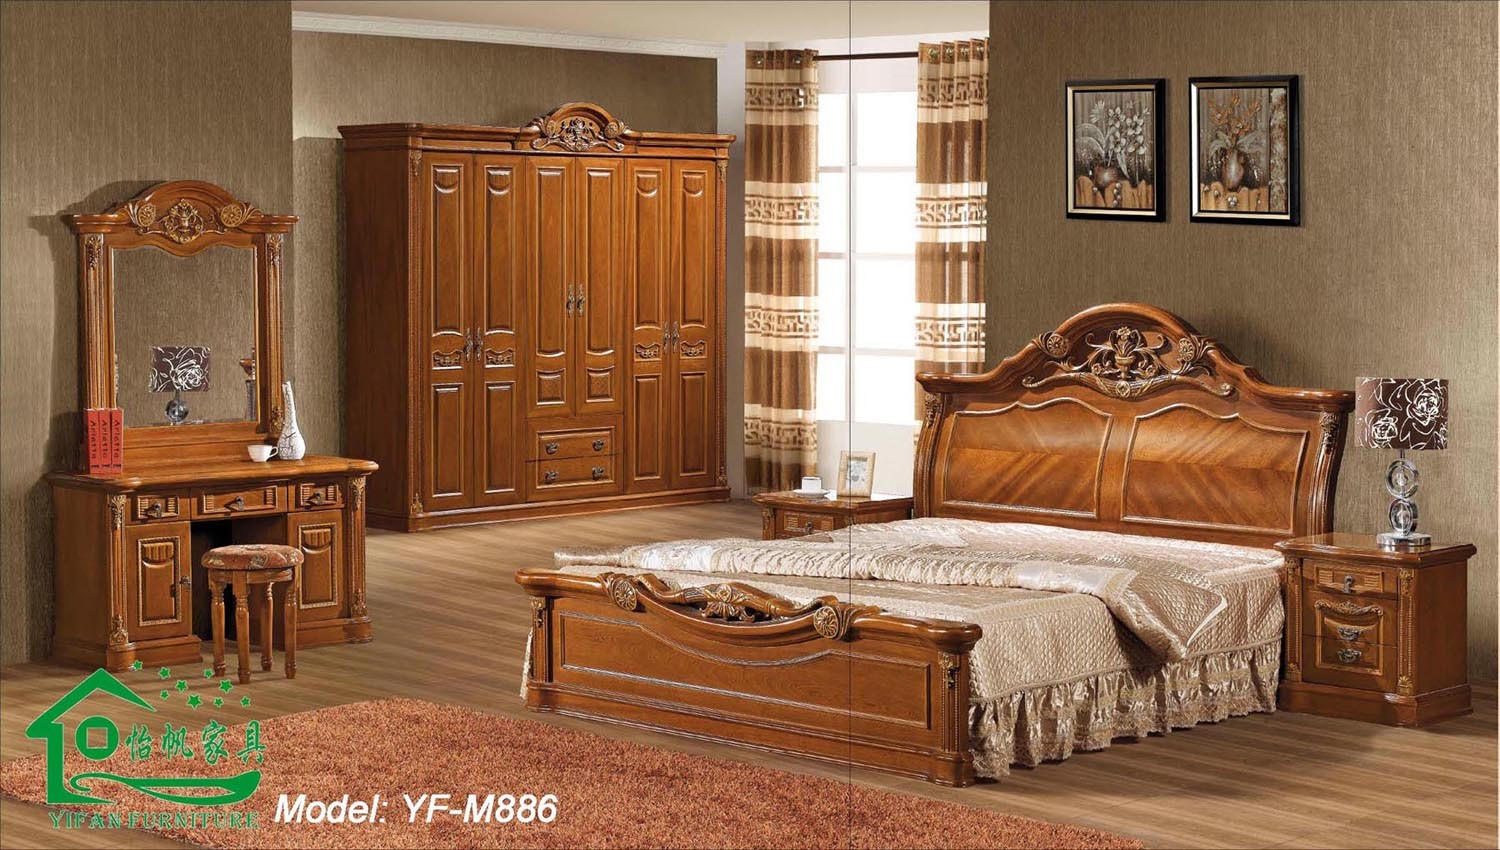 new design solid wood bedroom furniture yf m886 photo wood bedroom